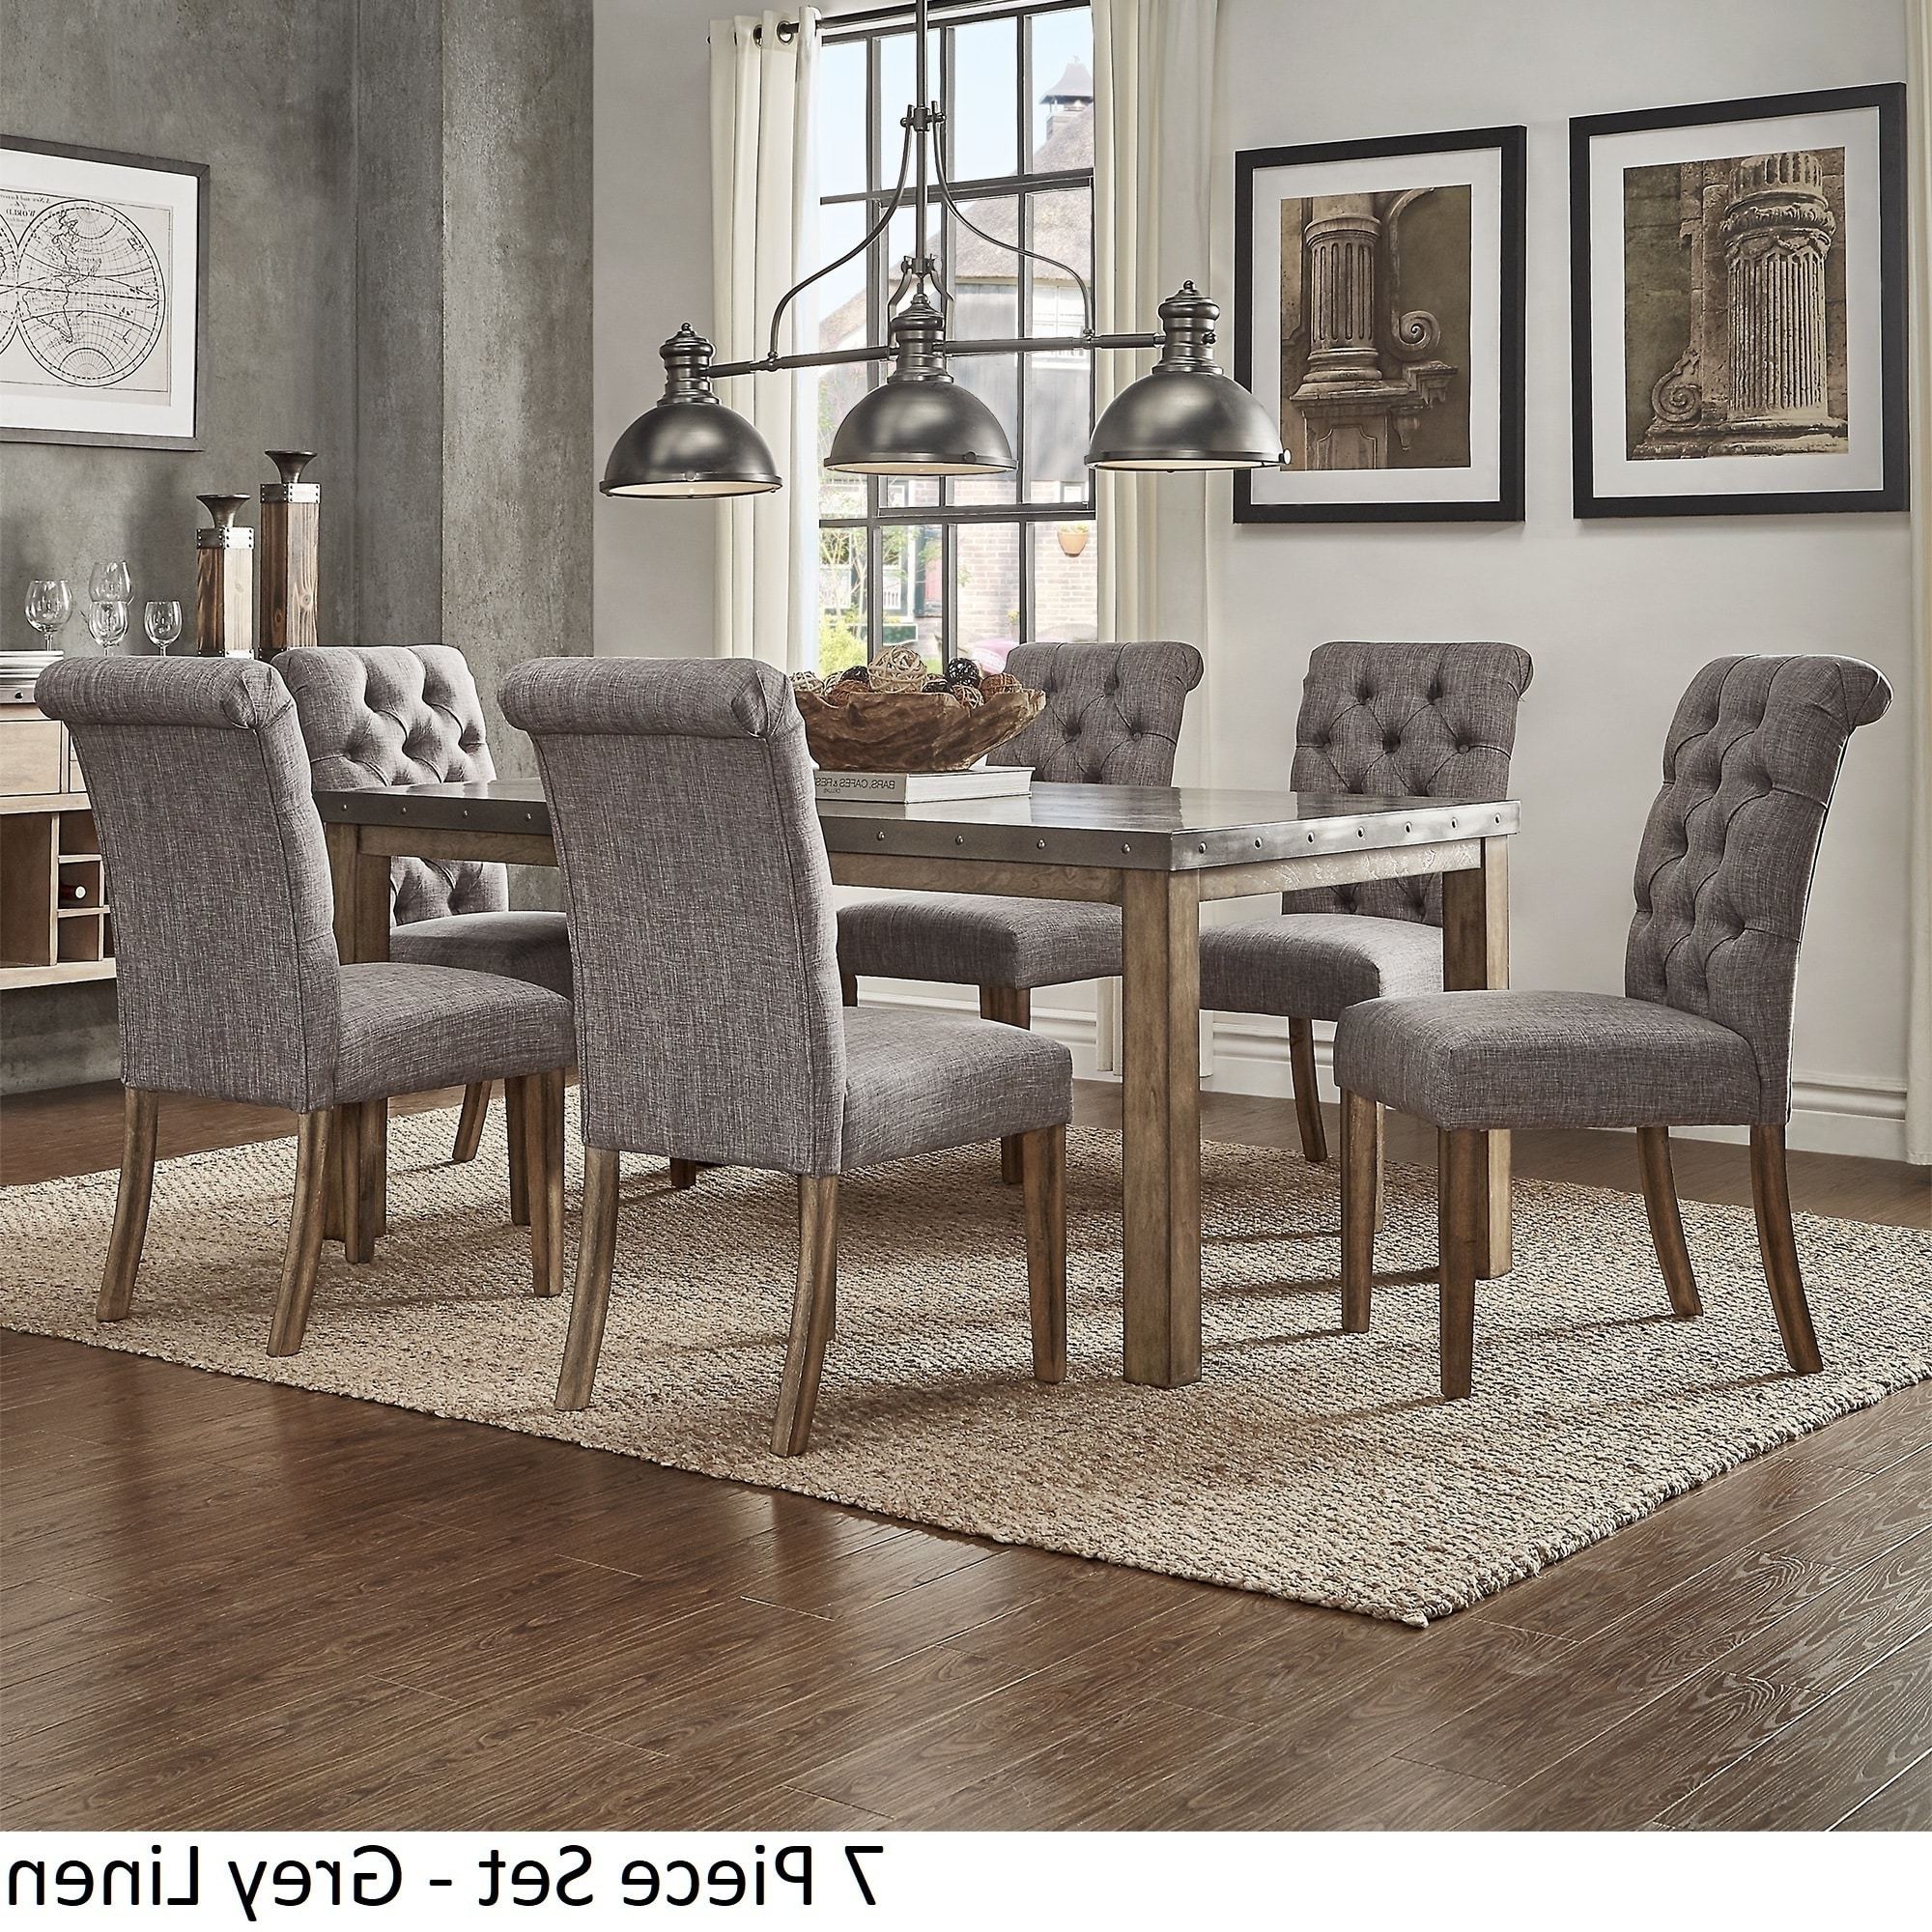 Best And Newest Cassidy Stainless Steel Top Rectangle Dining Table Setinspire Q With Regard To Candice Ii 7 Piece Extension Rectangular Dining Sets With Uph Side Chairs (Gallery 18 of 25)